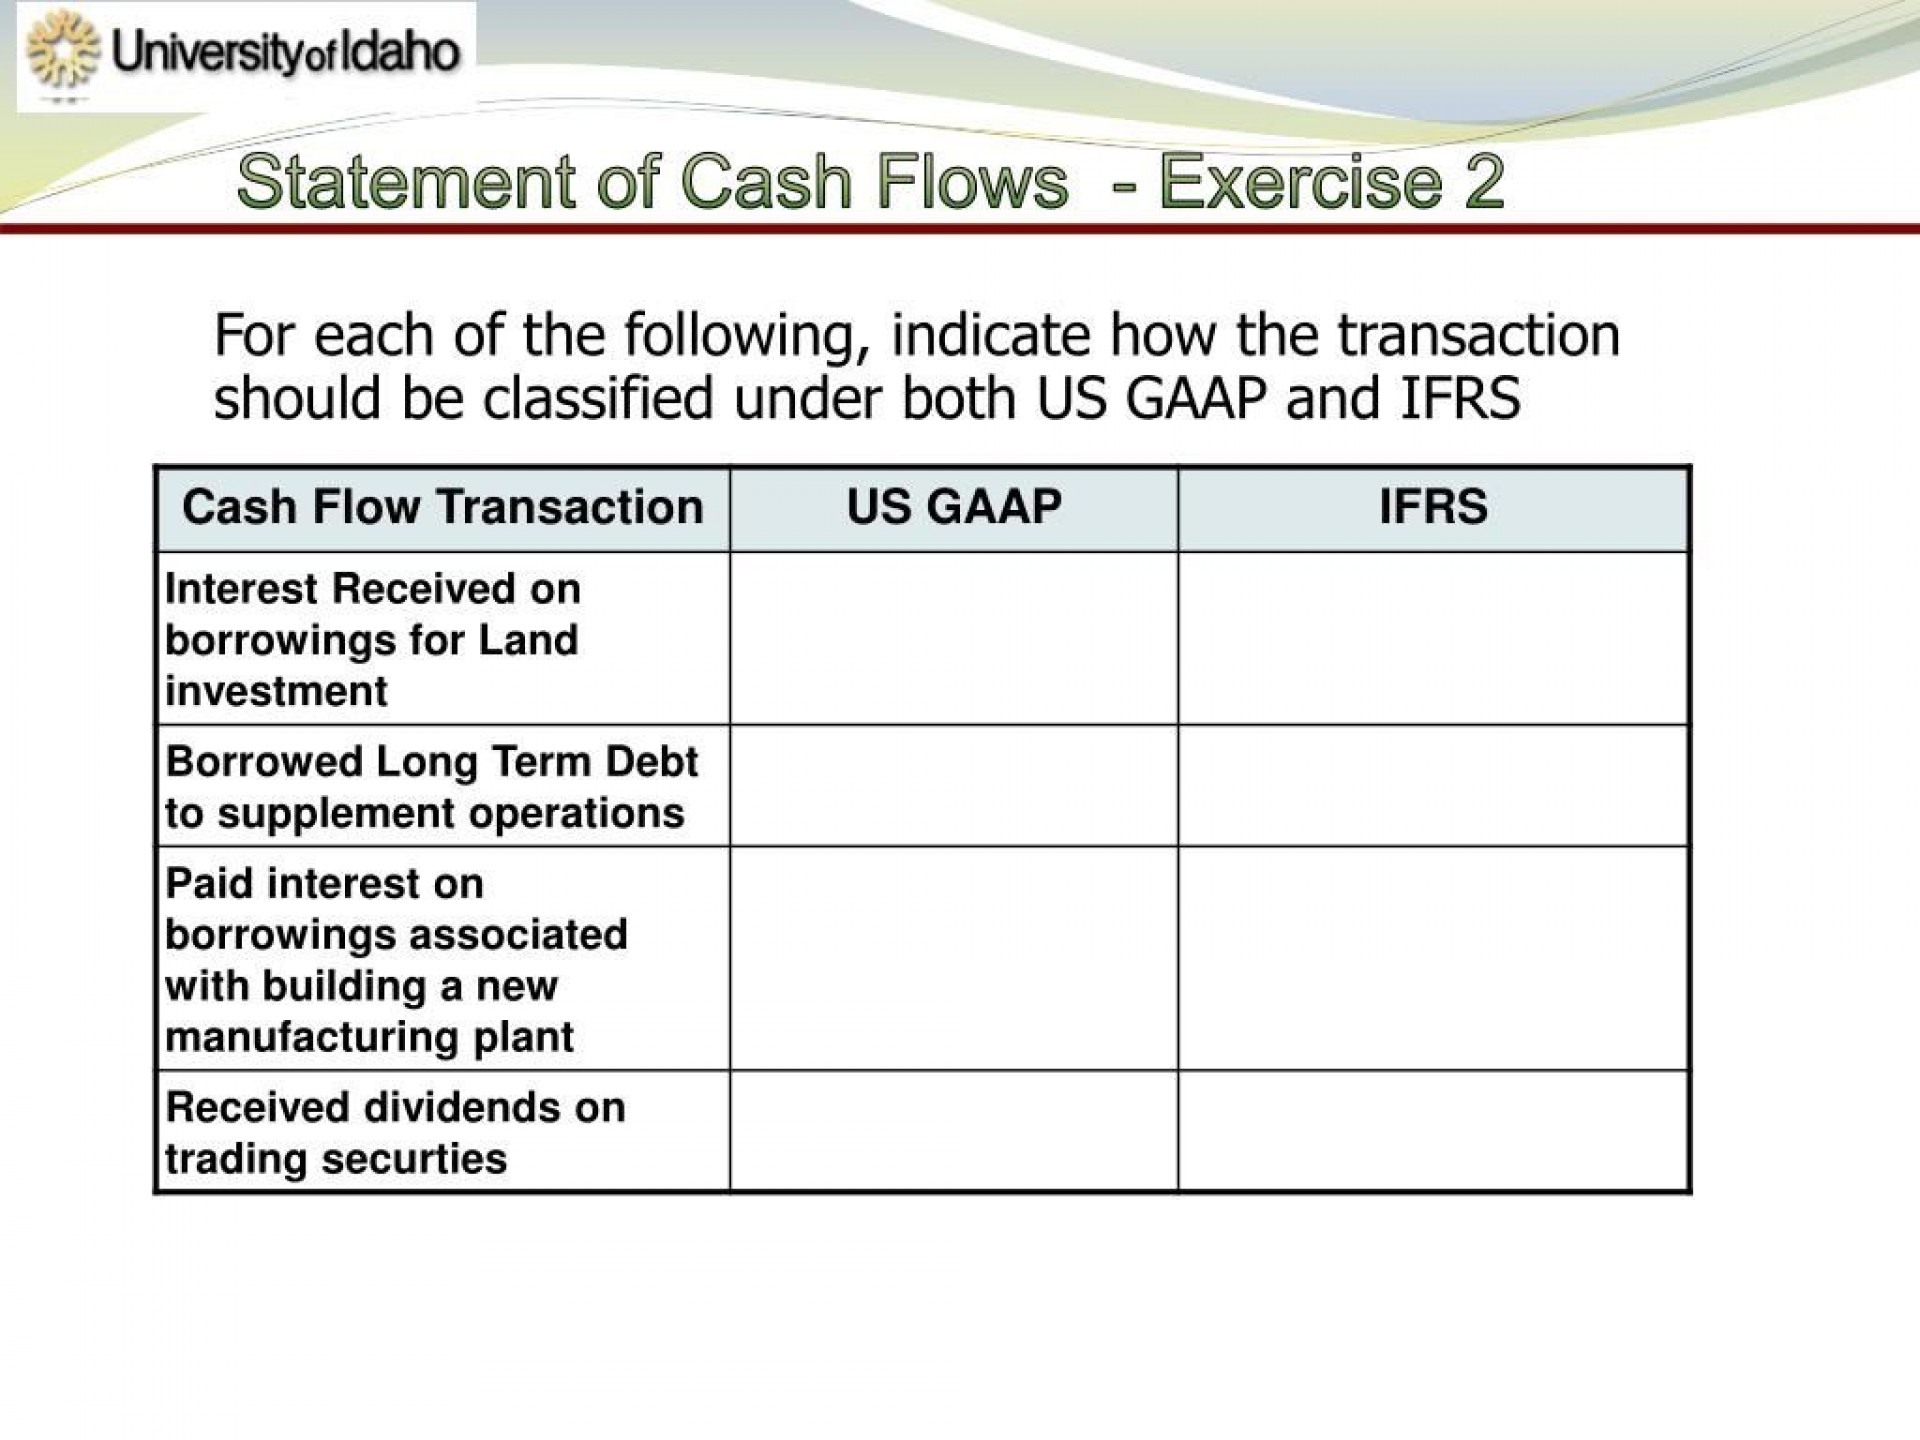 009 Staggering Statement Of Cash Flow Template Ifr High Definition  Ifrs Excel1920